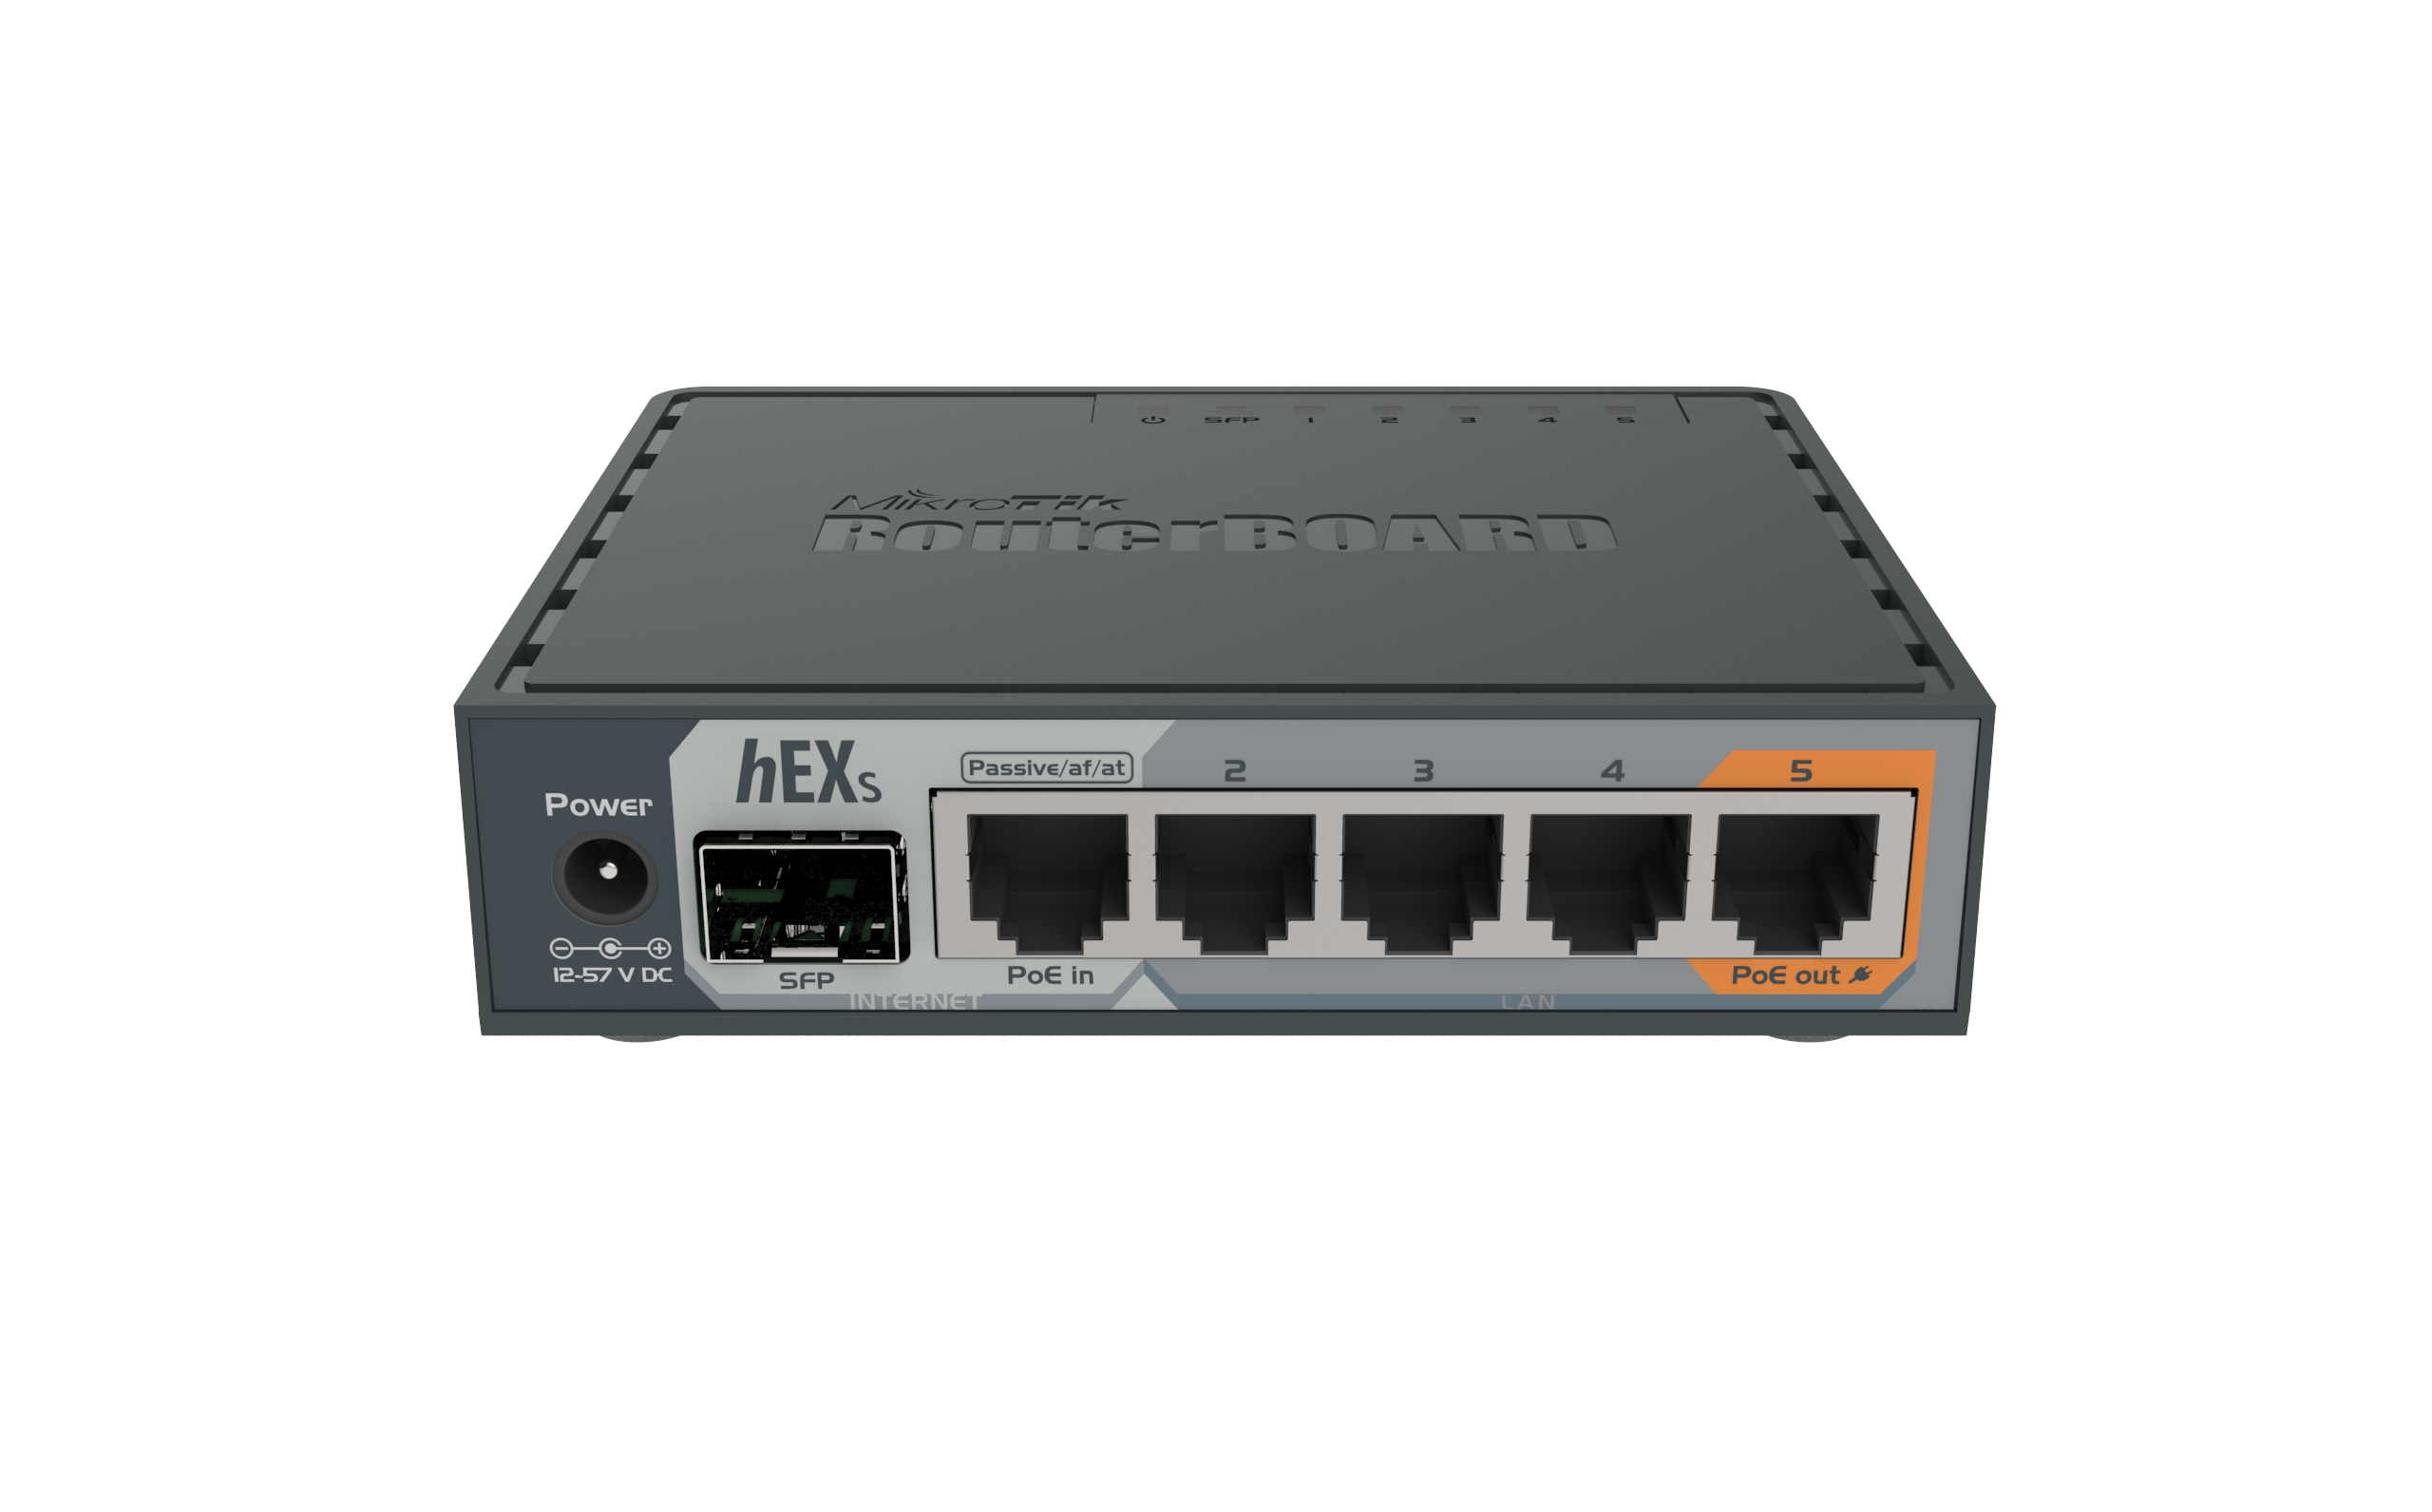 MikroTik Routers and Wireless - Products: hEX S